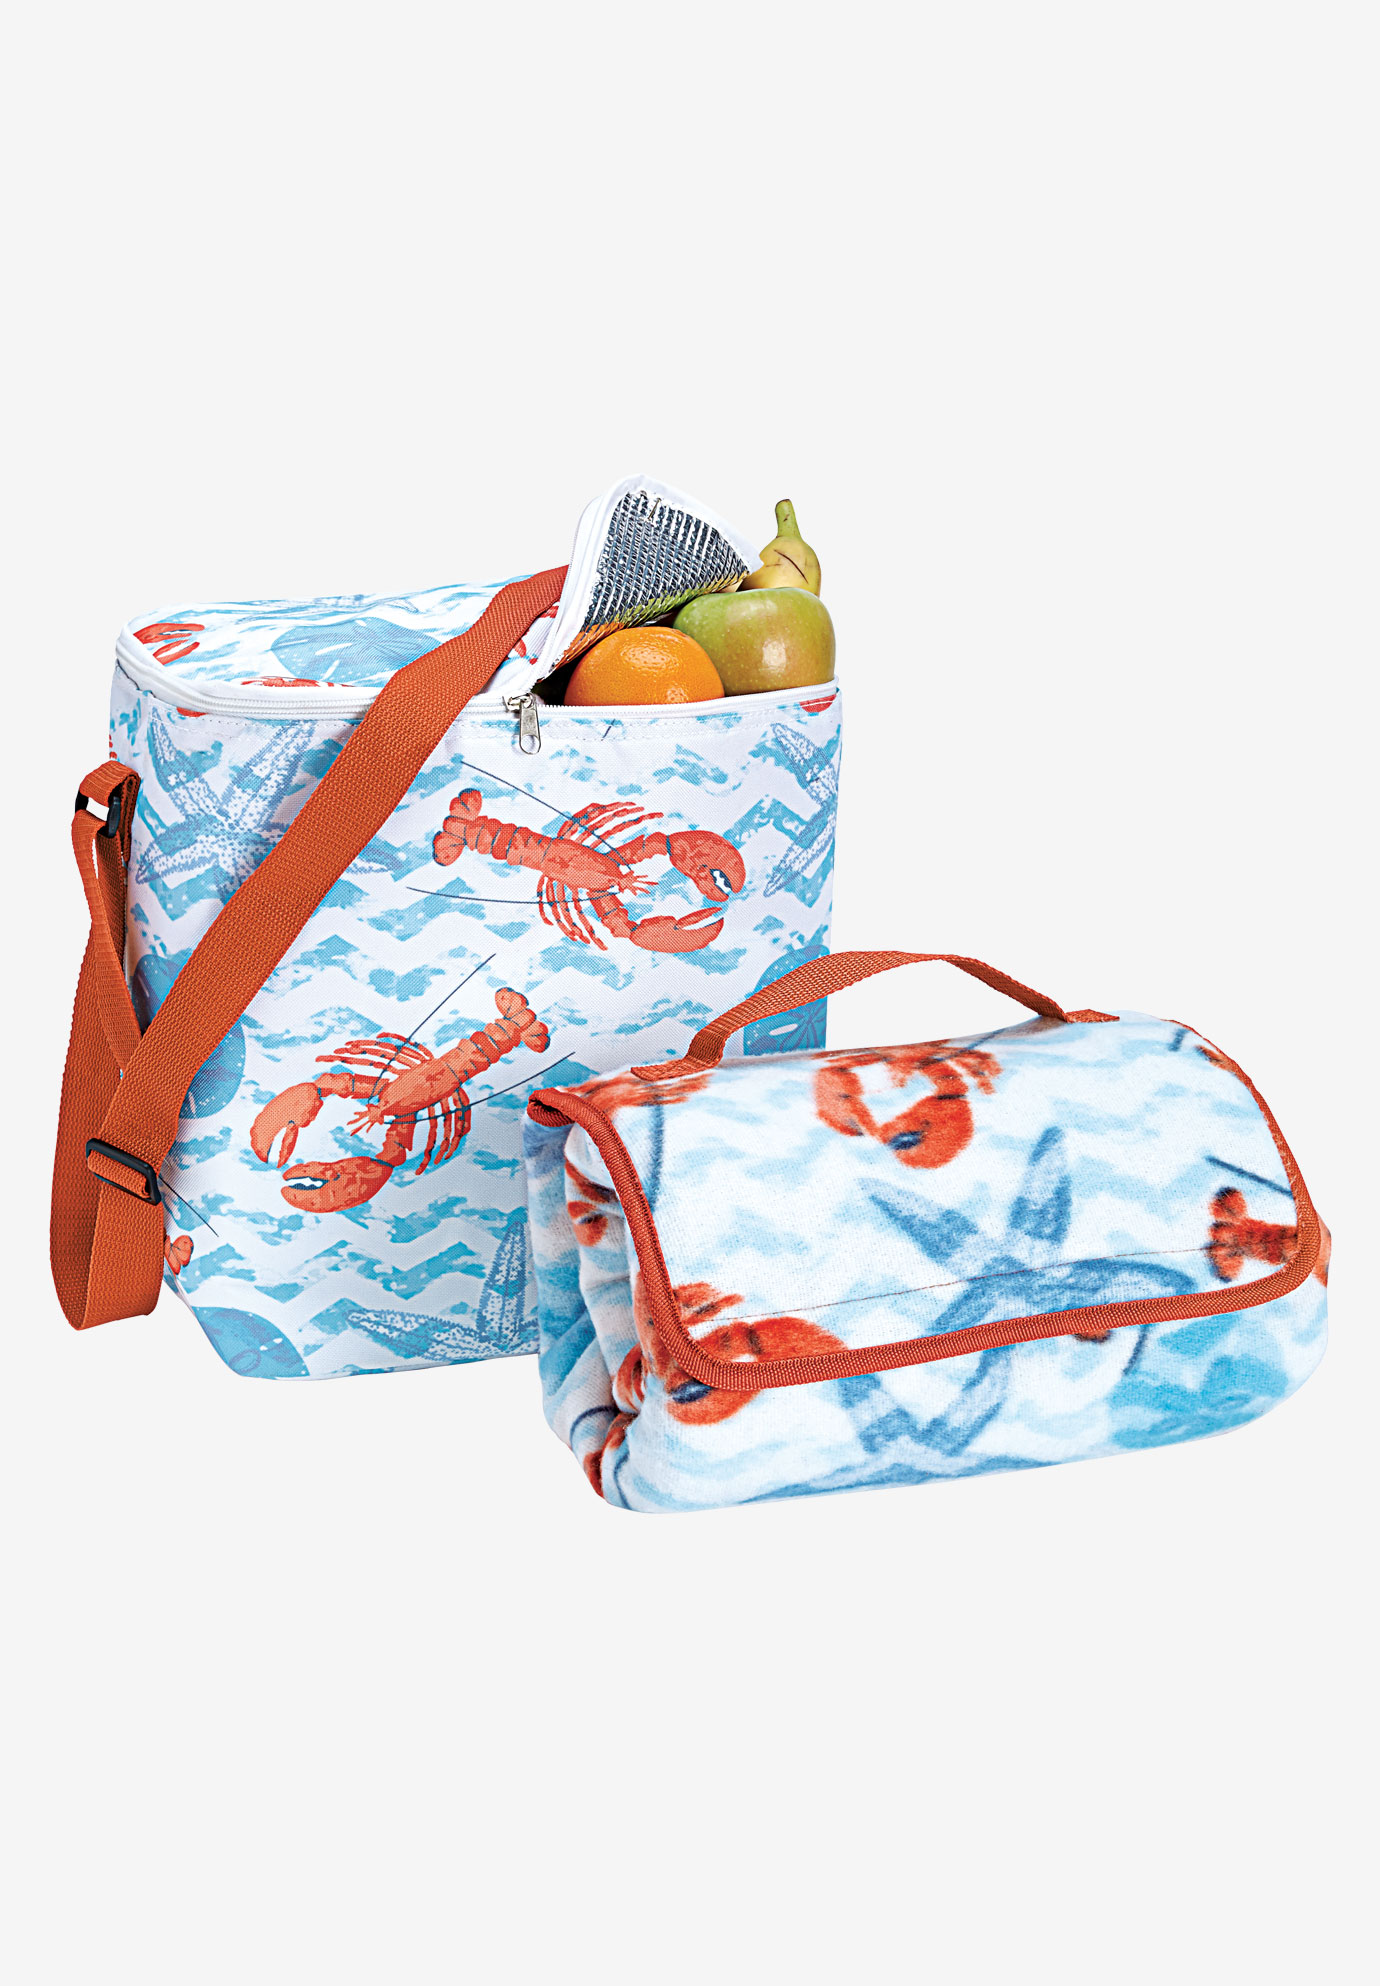 2PC Cooler bag & beach blanket set, LOBSTER PRINT